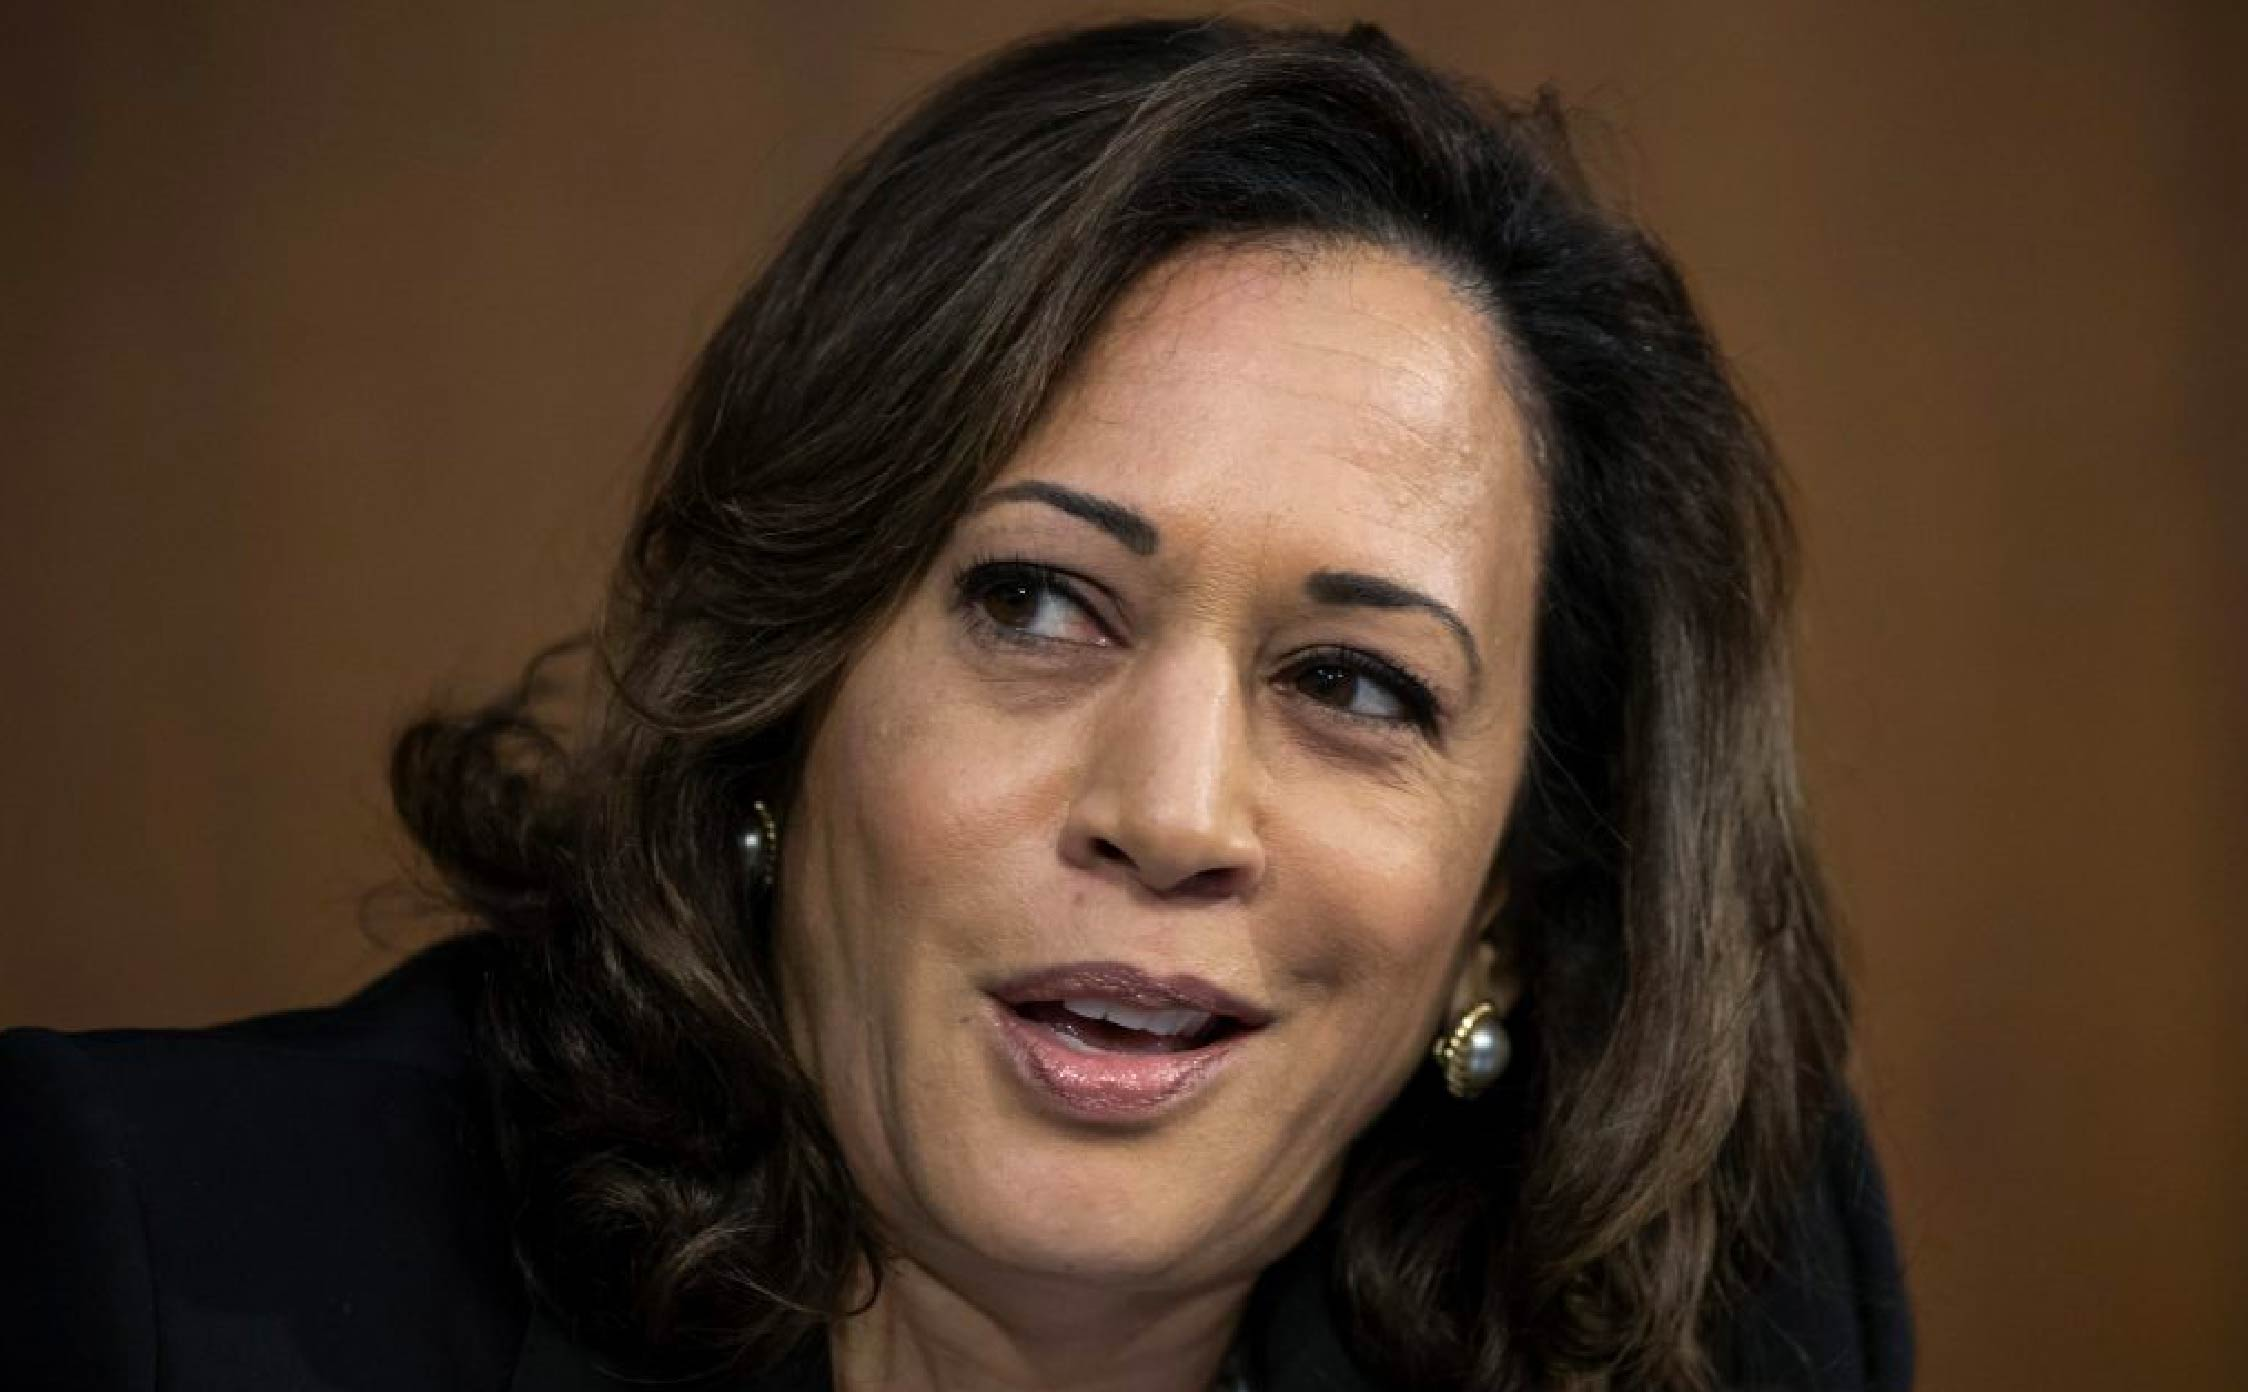 Kamala Sends Out a Cryptic Tweet Today That Gets Conspiracies Flowing...